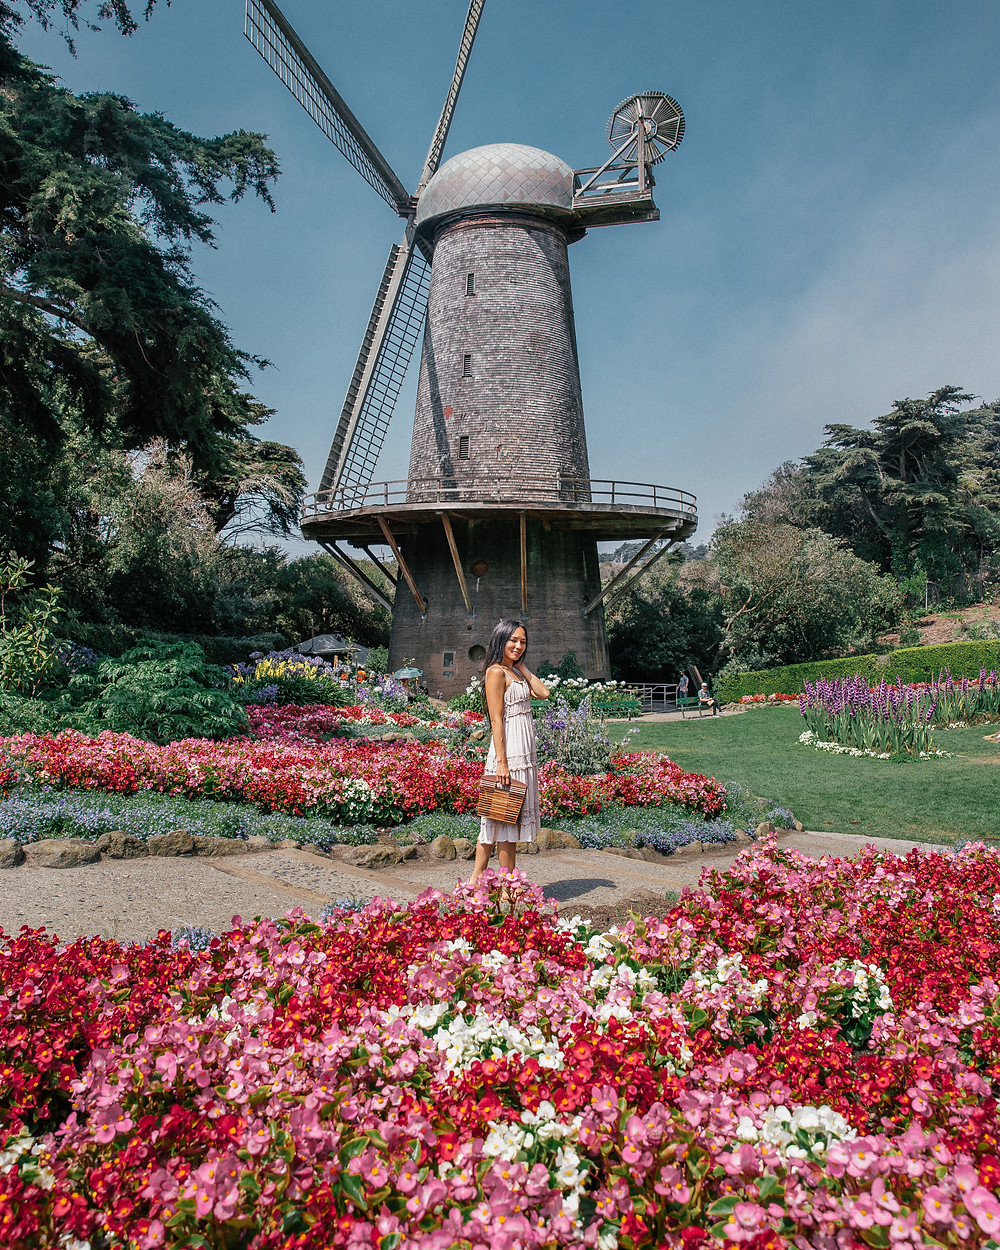 Queen Wilhelmina Tulip Garden, San Francisco, California